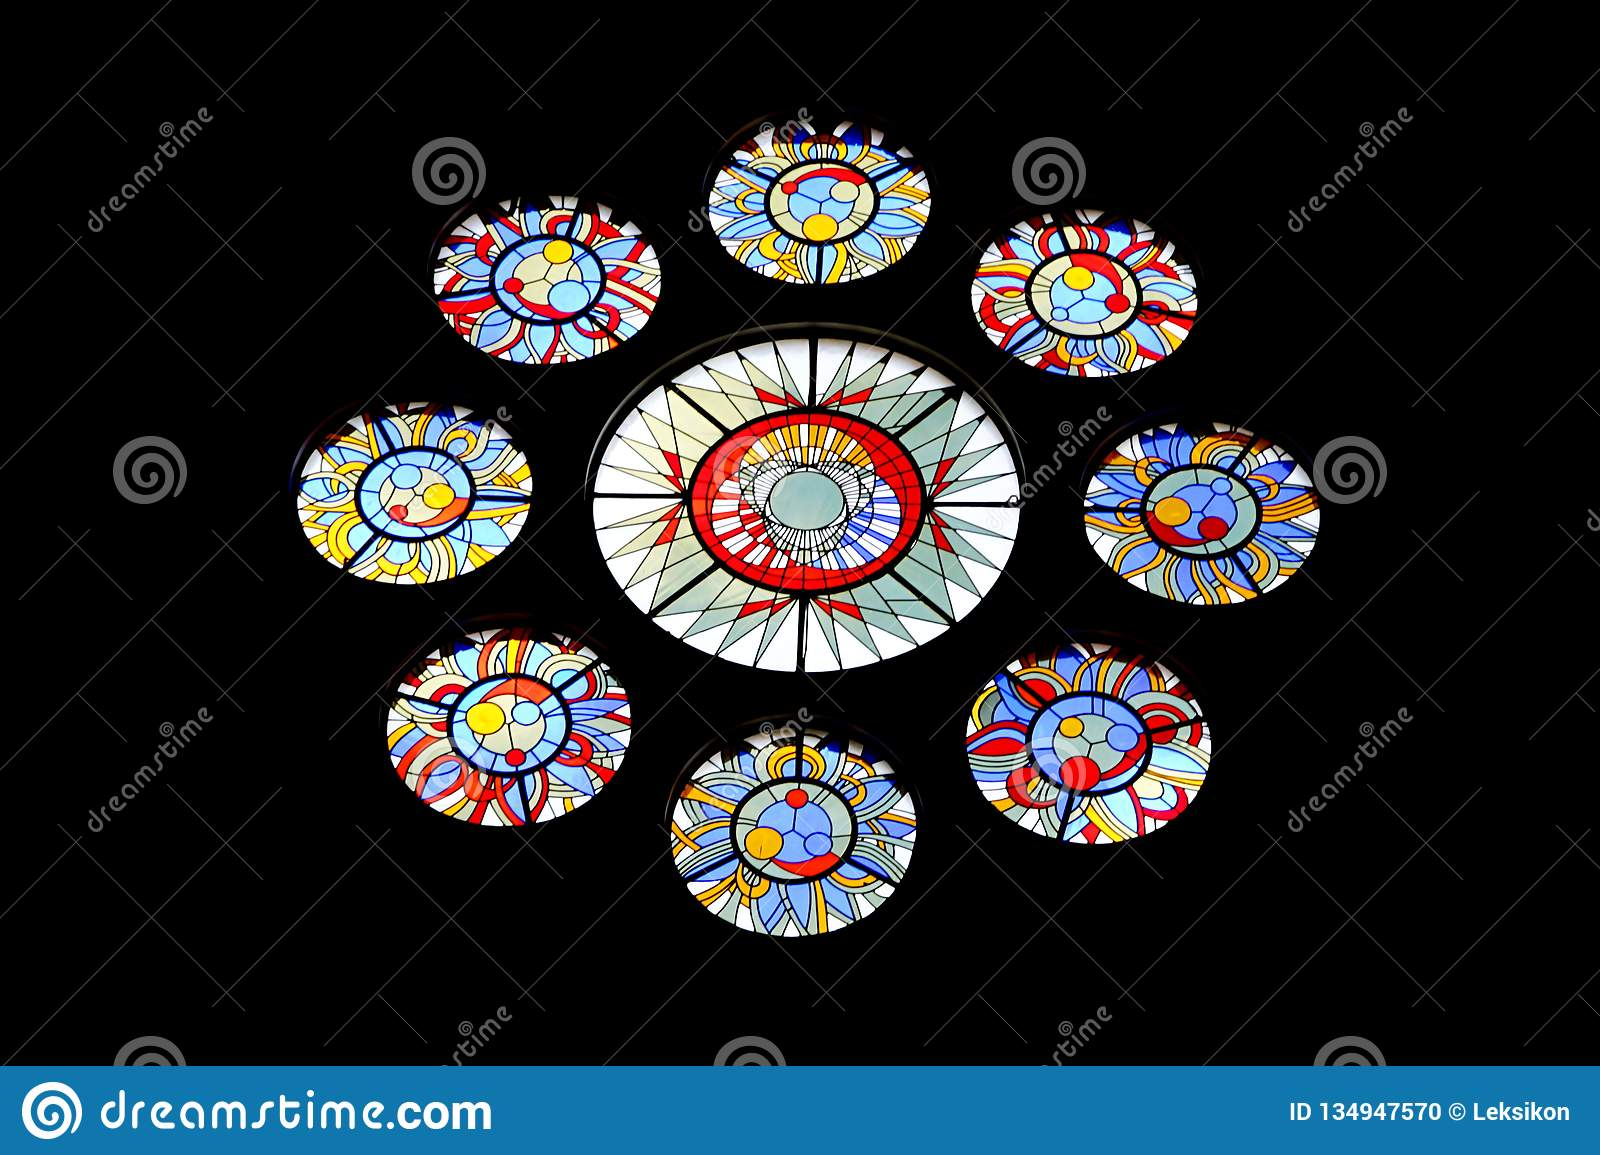 Beautiful colorful stained glass window. Stained glass painting